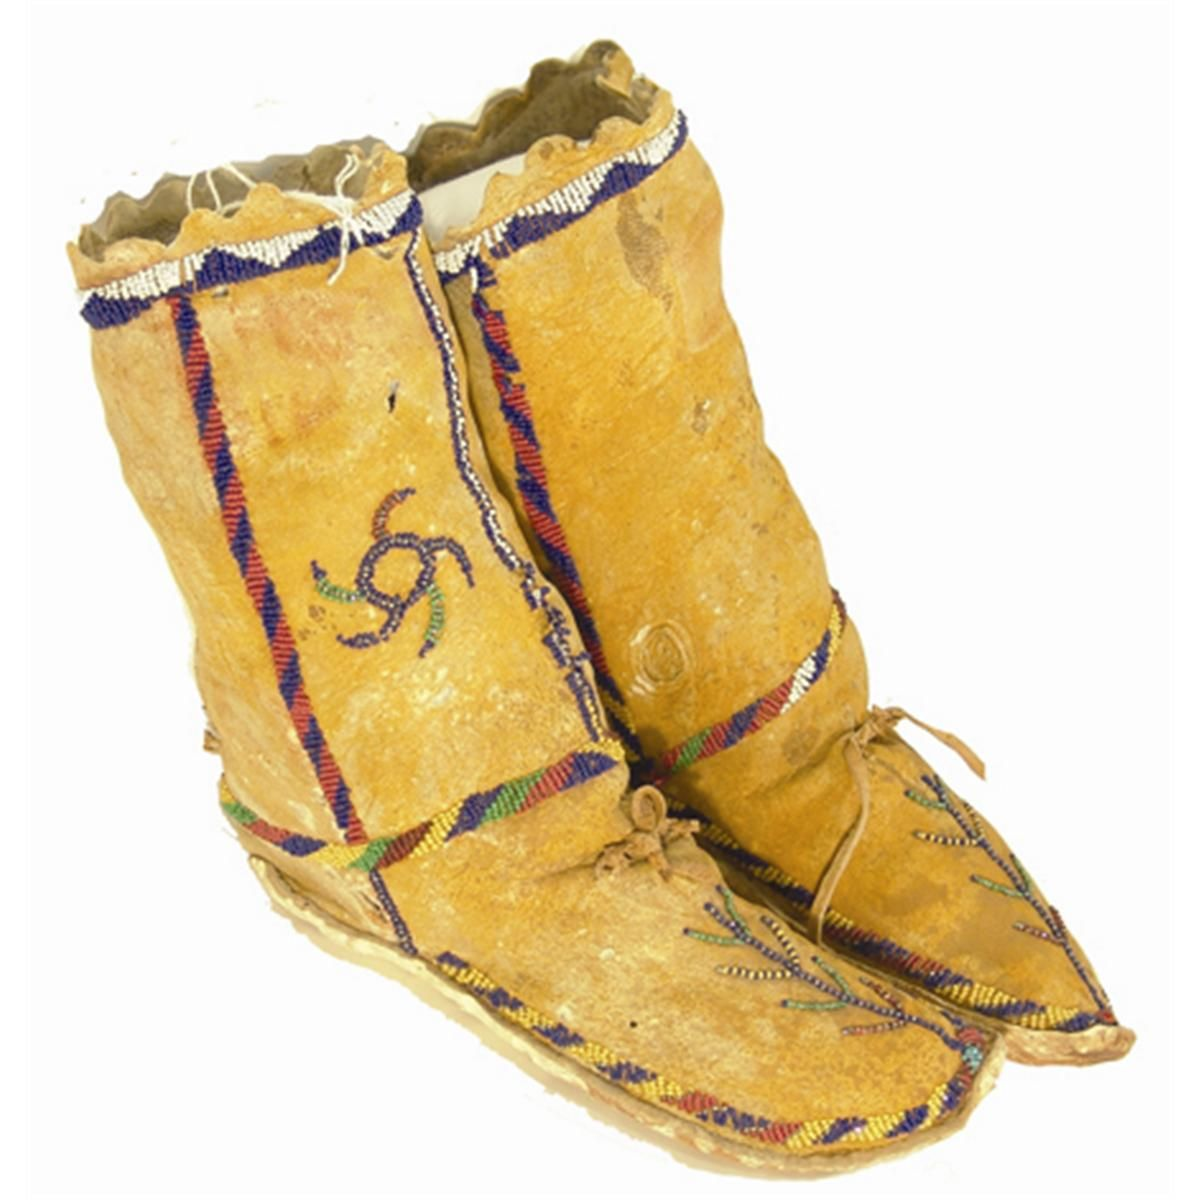 apache moccasins boots footwear tribal native